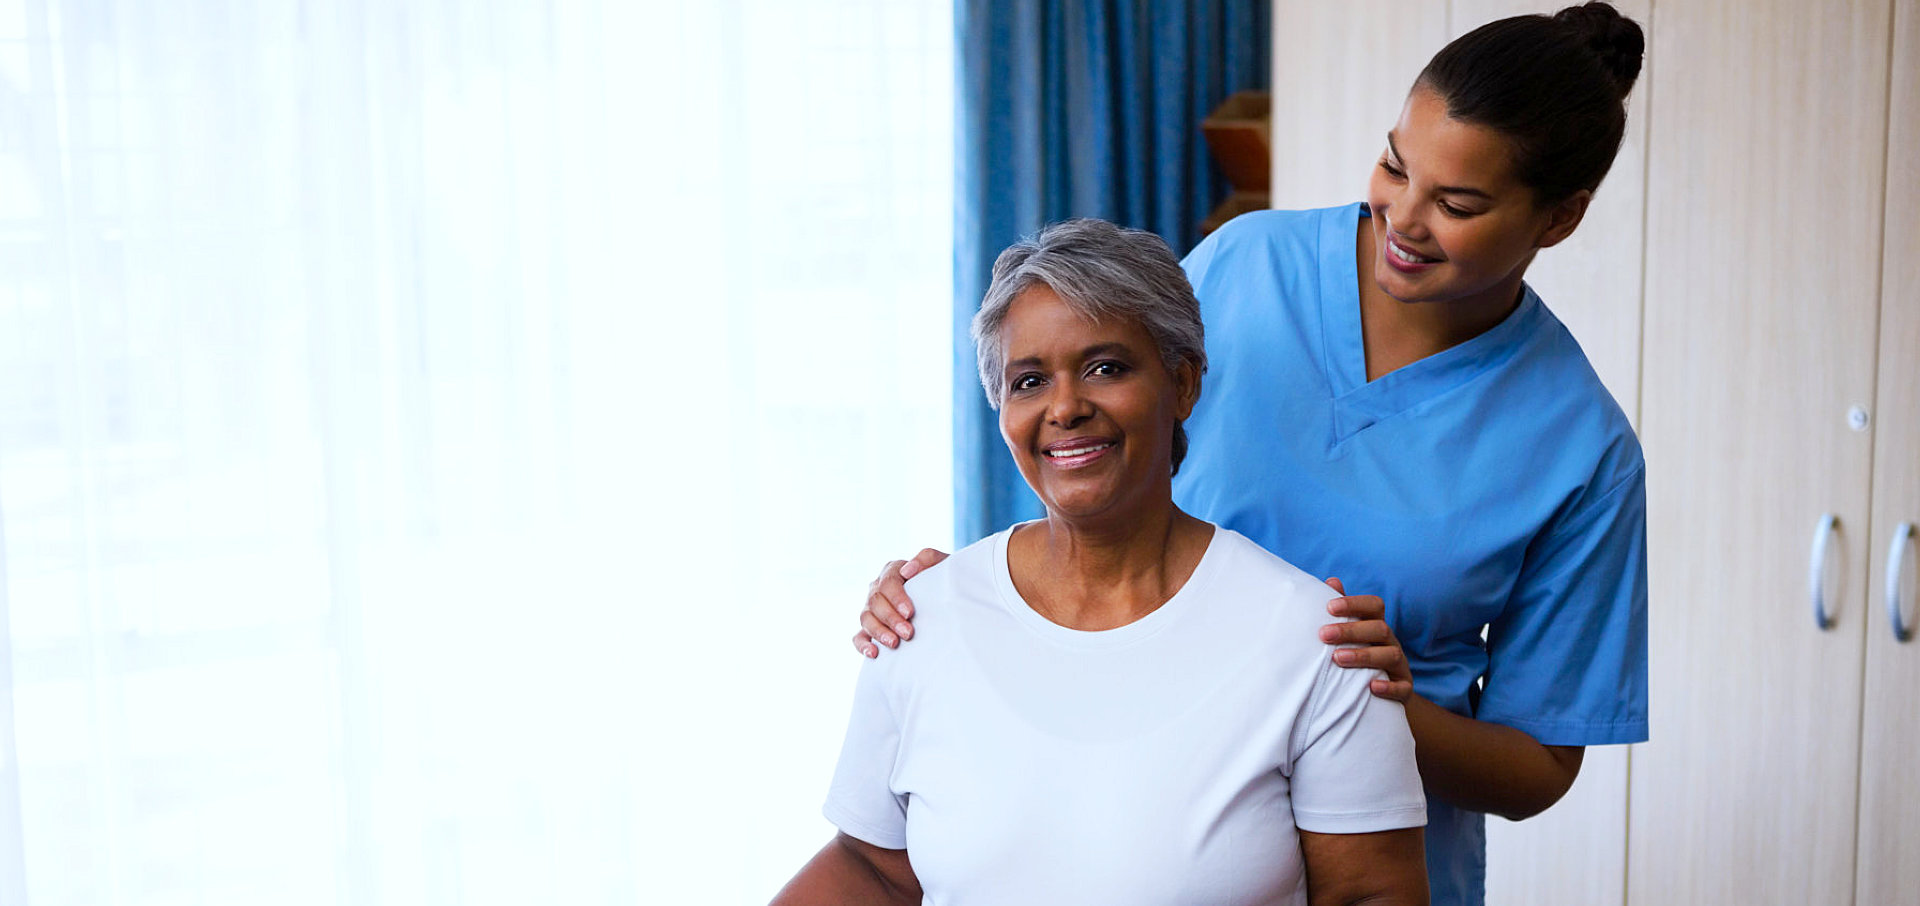 caregiver and her senior patient